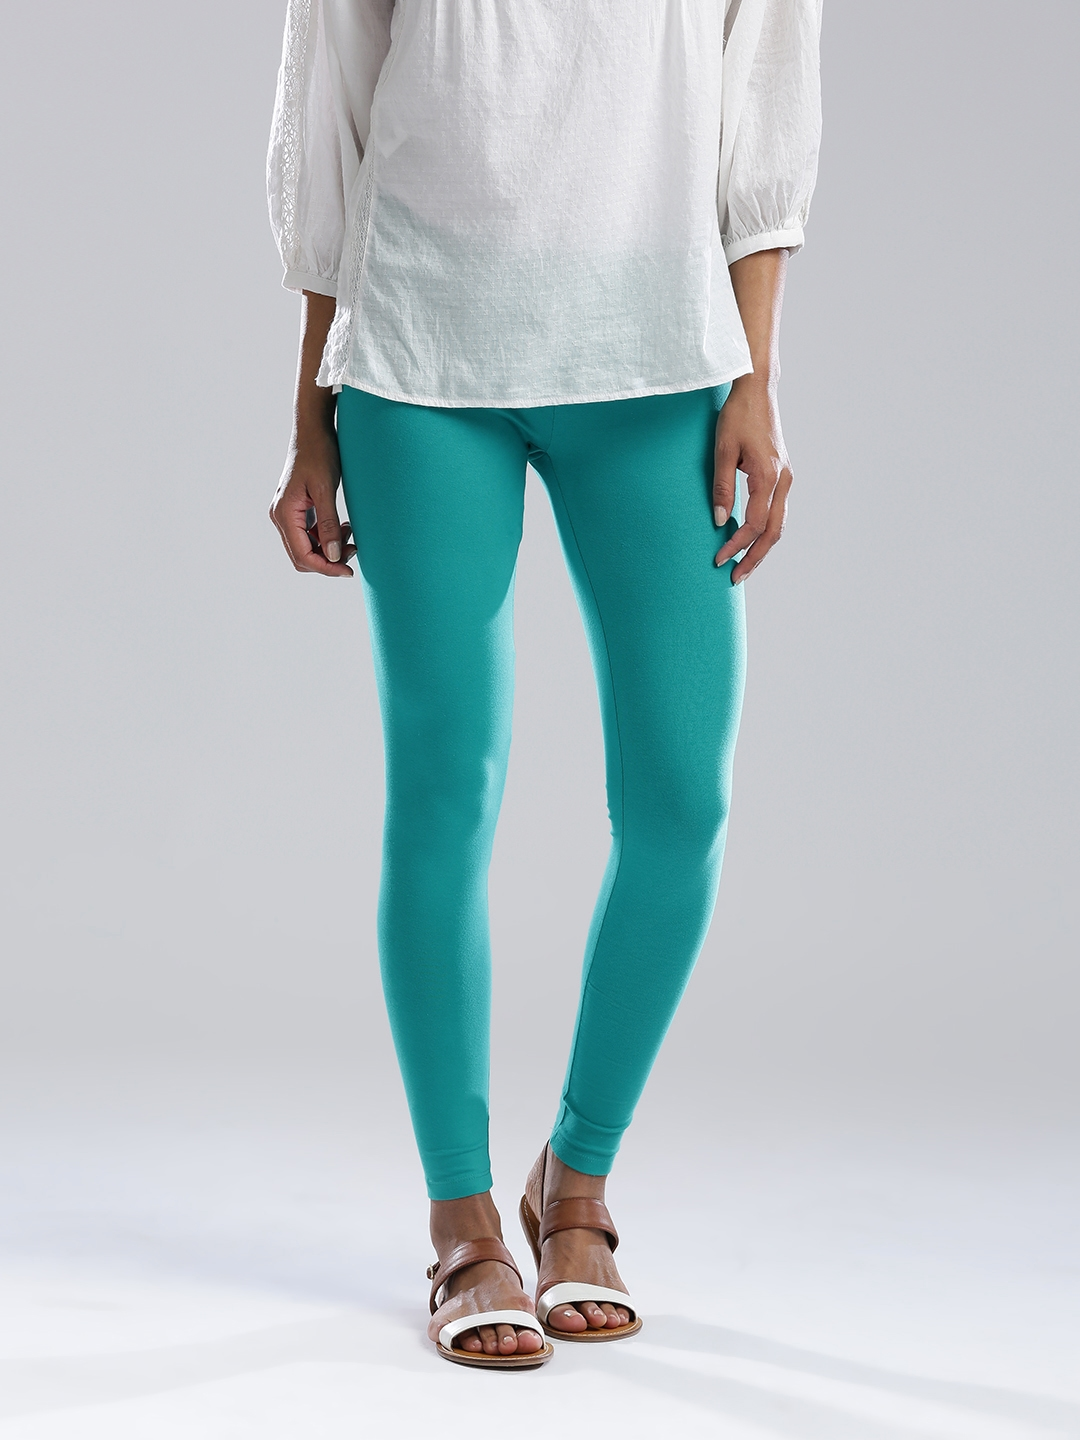 W Green Ankle Length Leggings